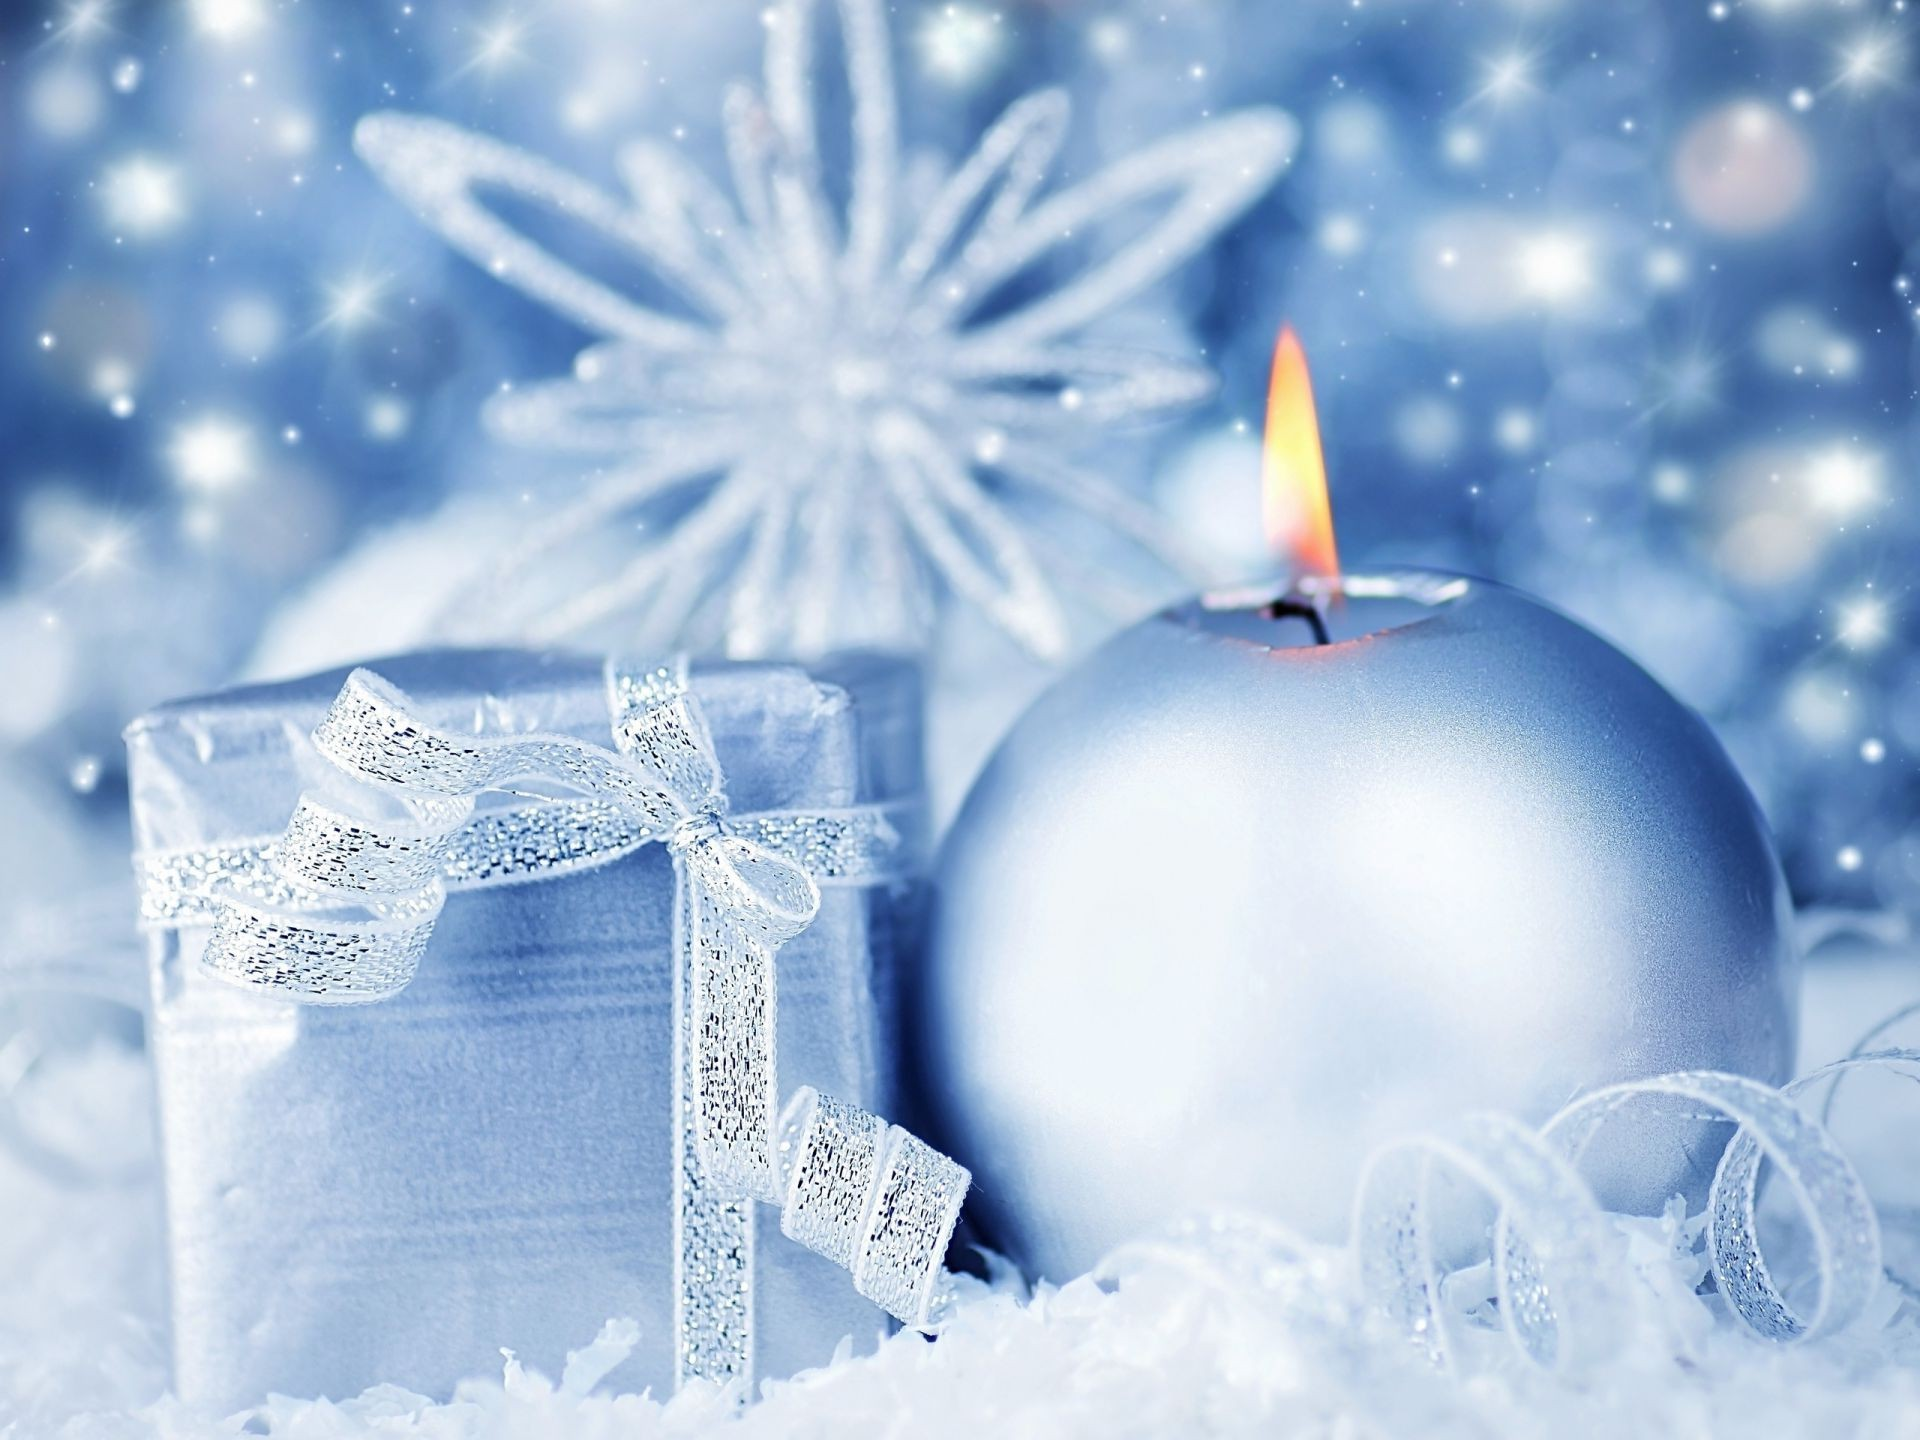 Snowflake candle gift blue